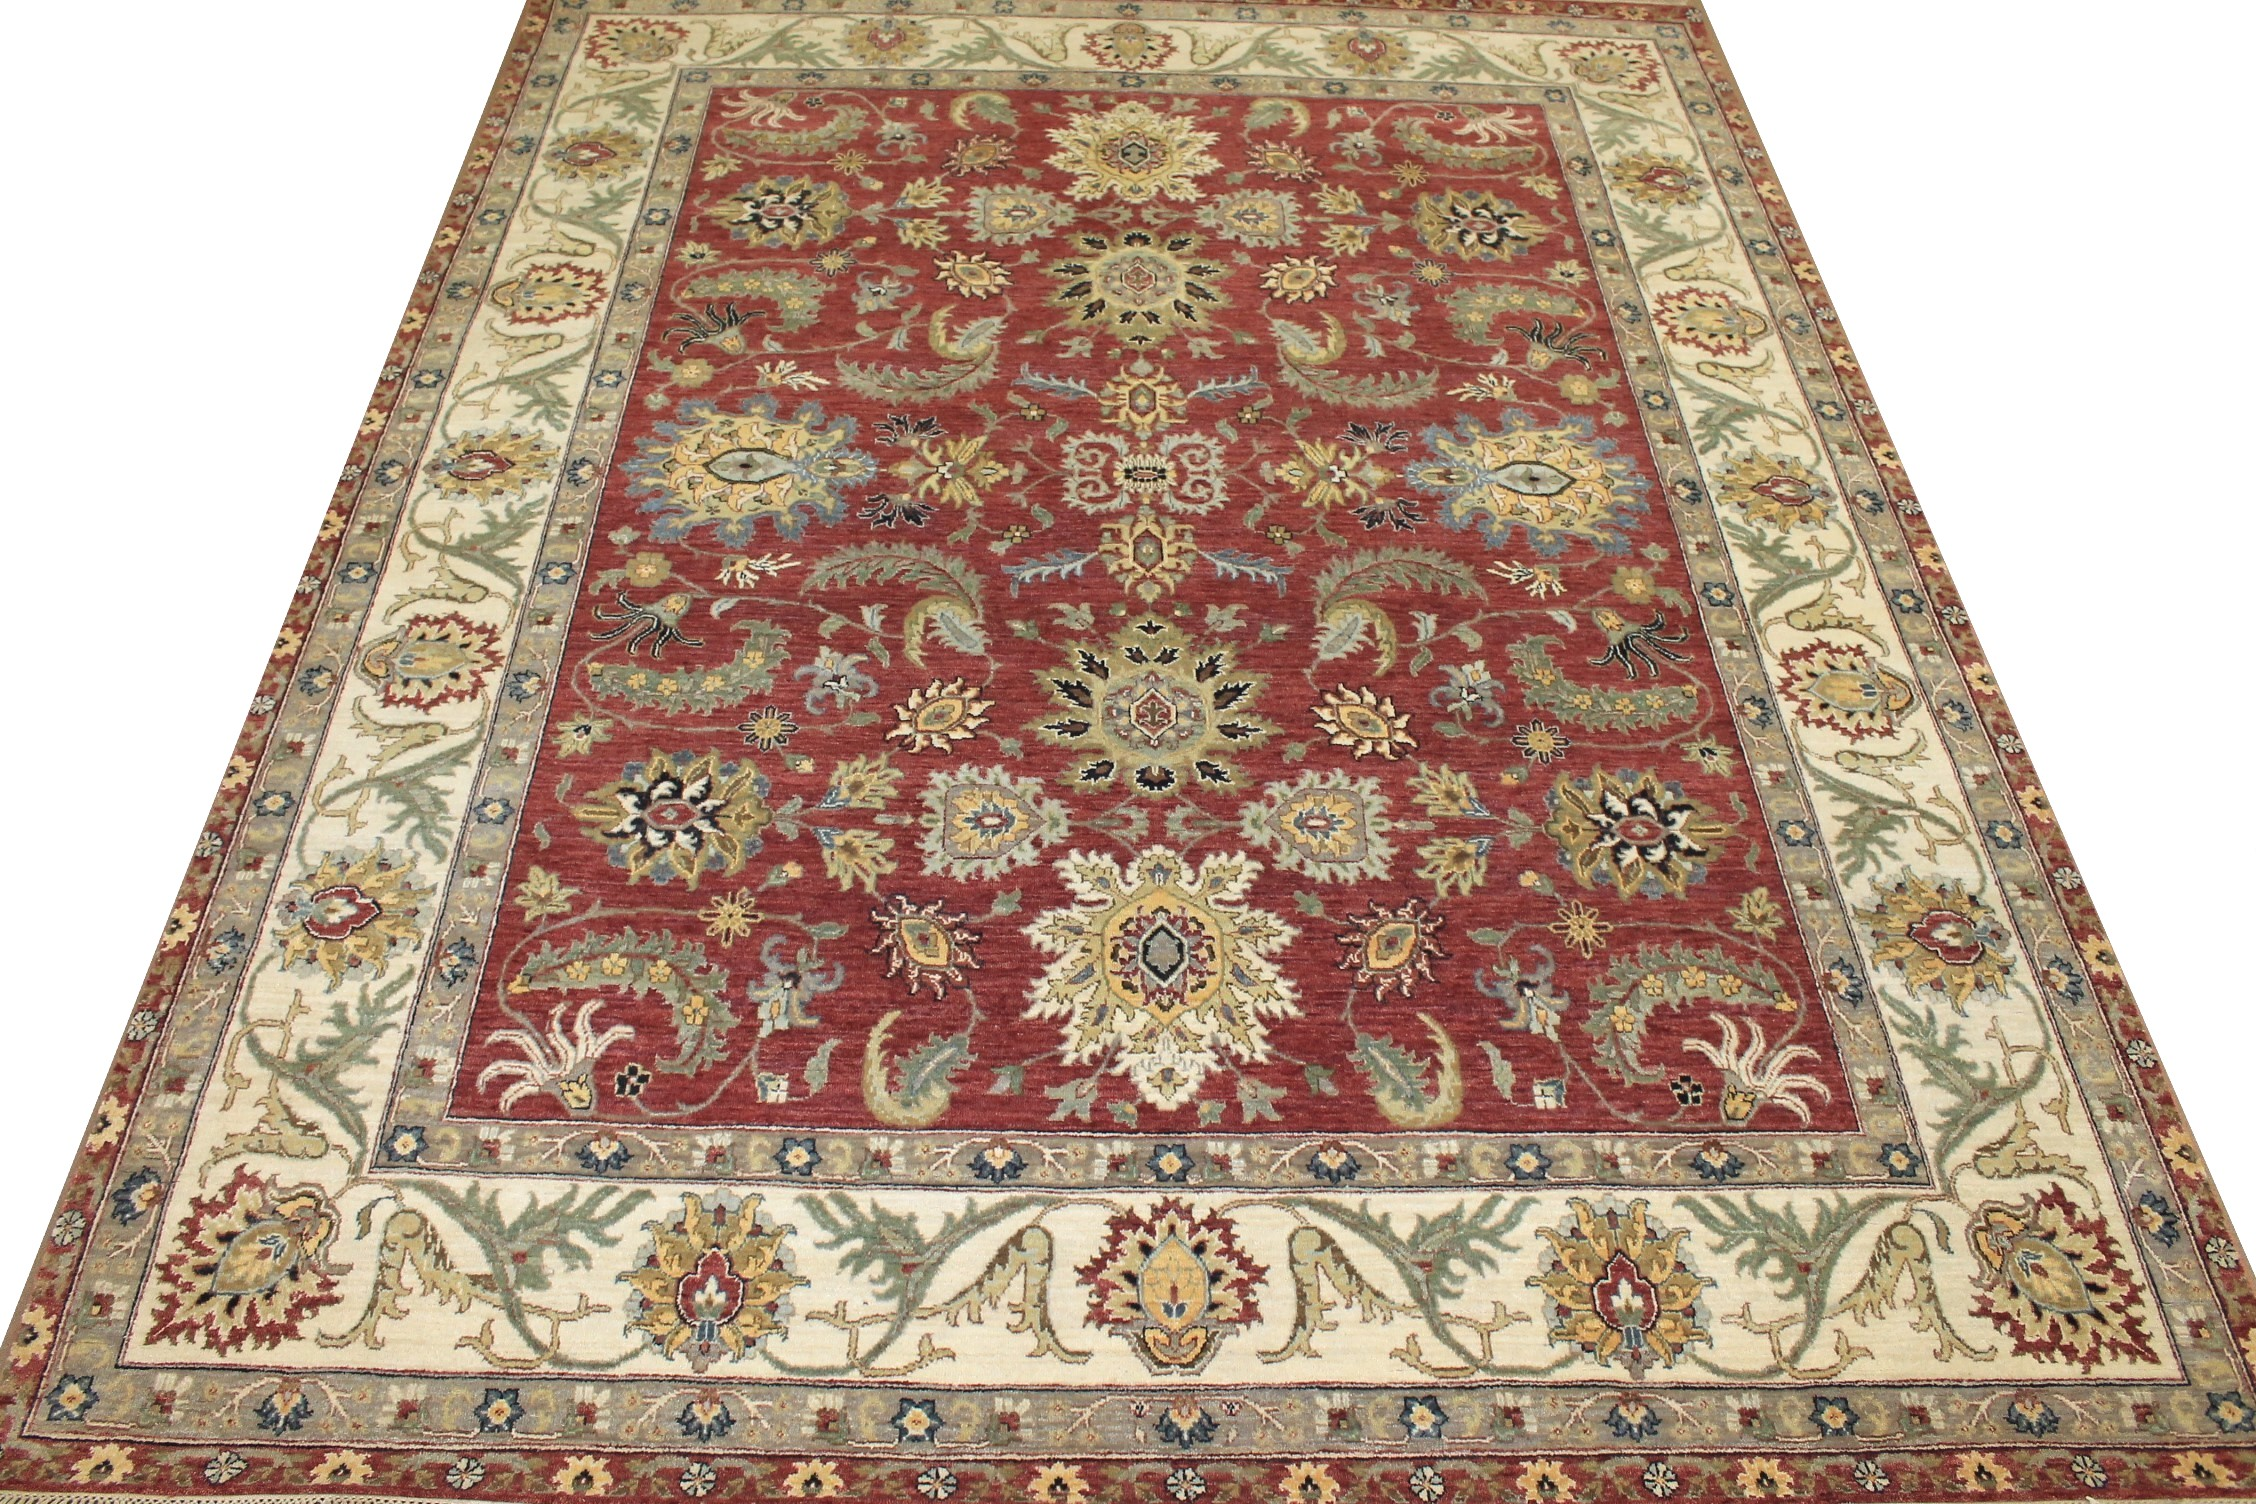 8x10 Traditional Hand Knotted Wool Area Rug - MR025187